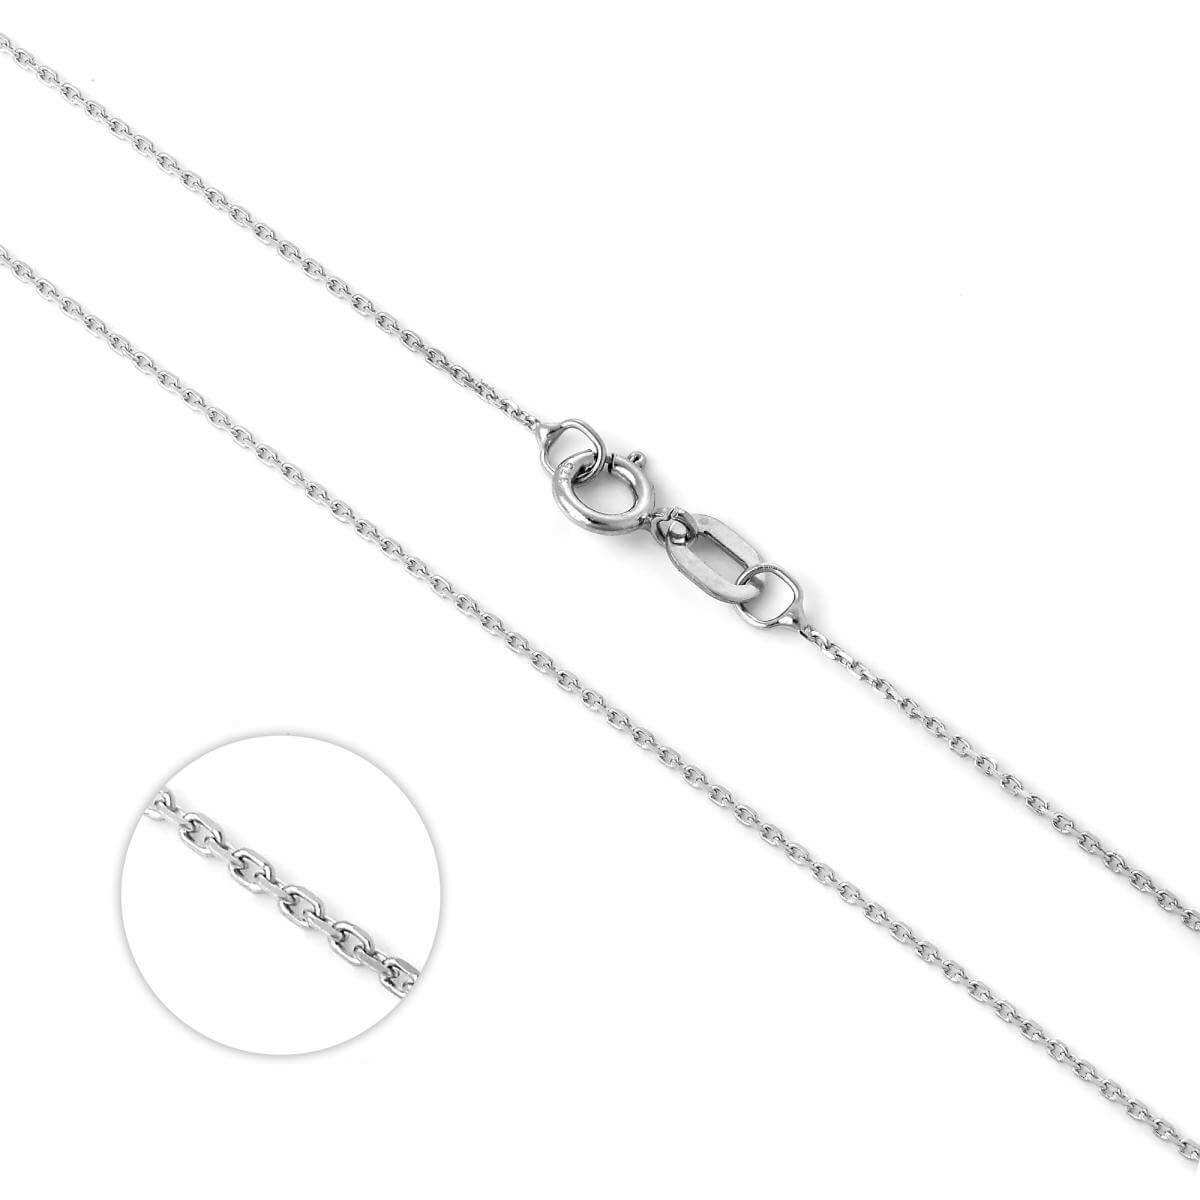 9ct White Gold Fine Belcher Chain 16 - 20 Inches